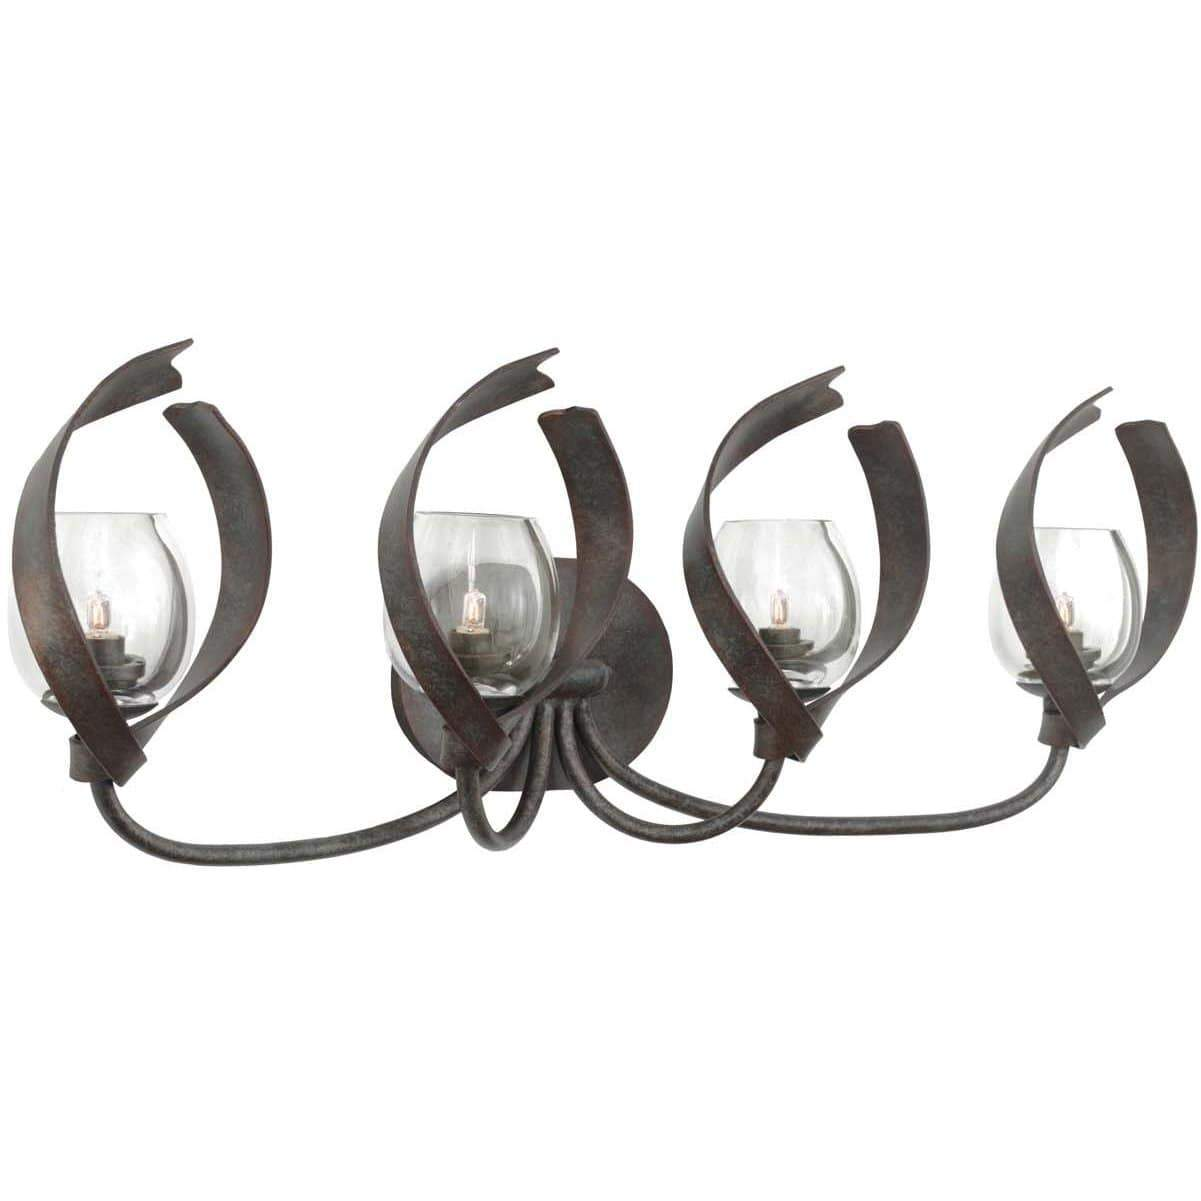 Kalco Lighting Wall Sconces Oxidized Copper Solana 4 Light Bath By Kalco Lighting 504224